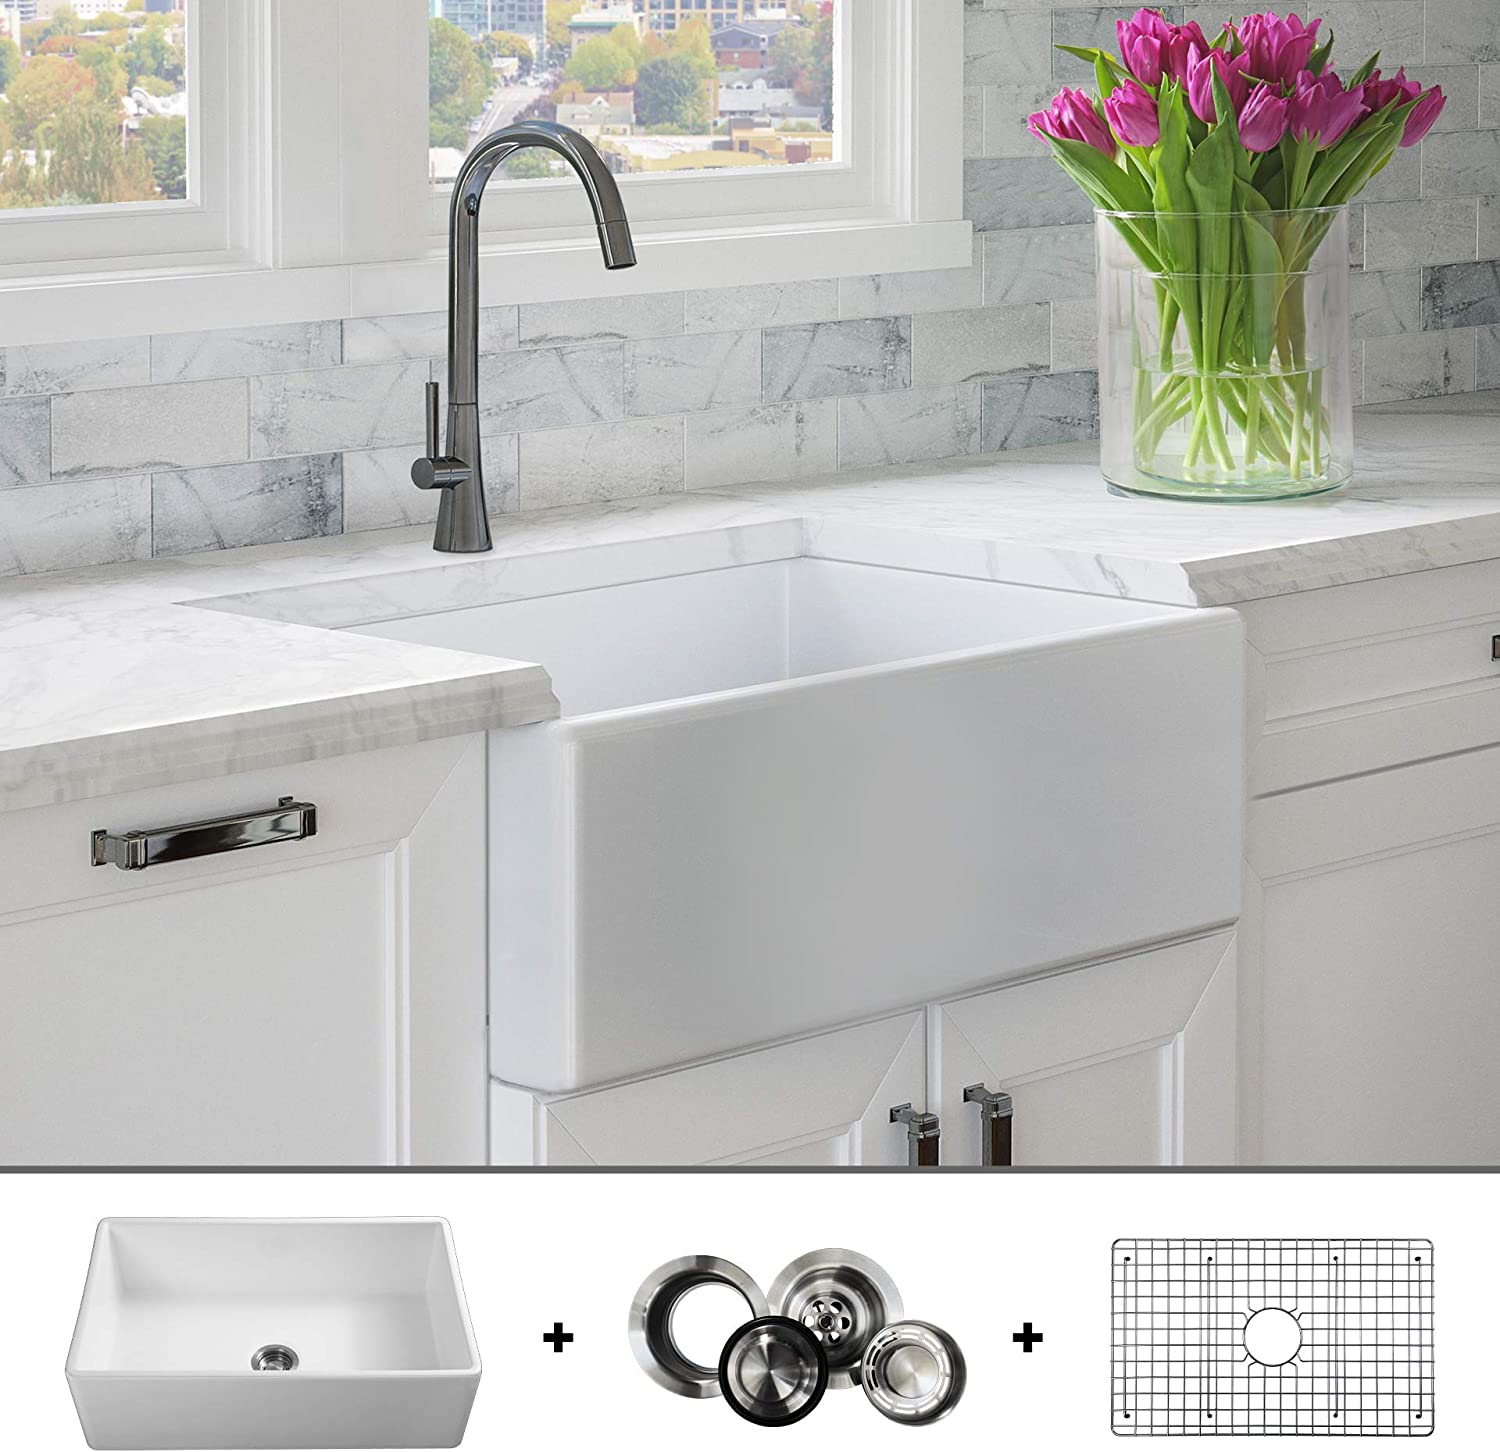 Luxury 30 Inch Modern Farmhouse Ultra Fine Fireclay Kitchen Sink In White Single Bowl Flat Front Includes Grid And Drain Fsw1001 By Fossil Blu